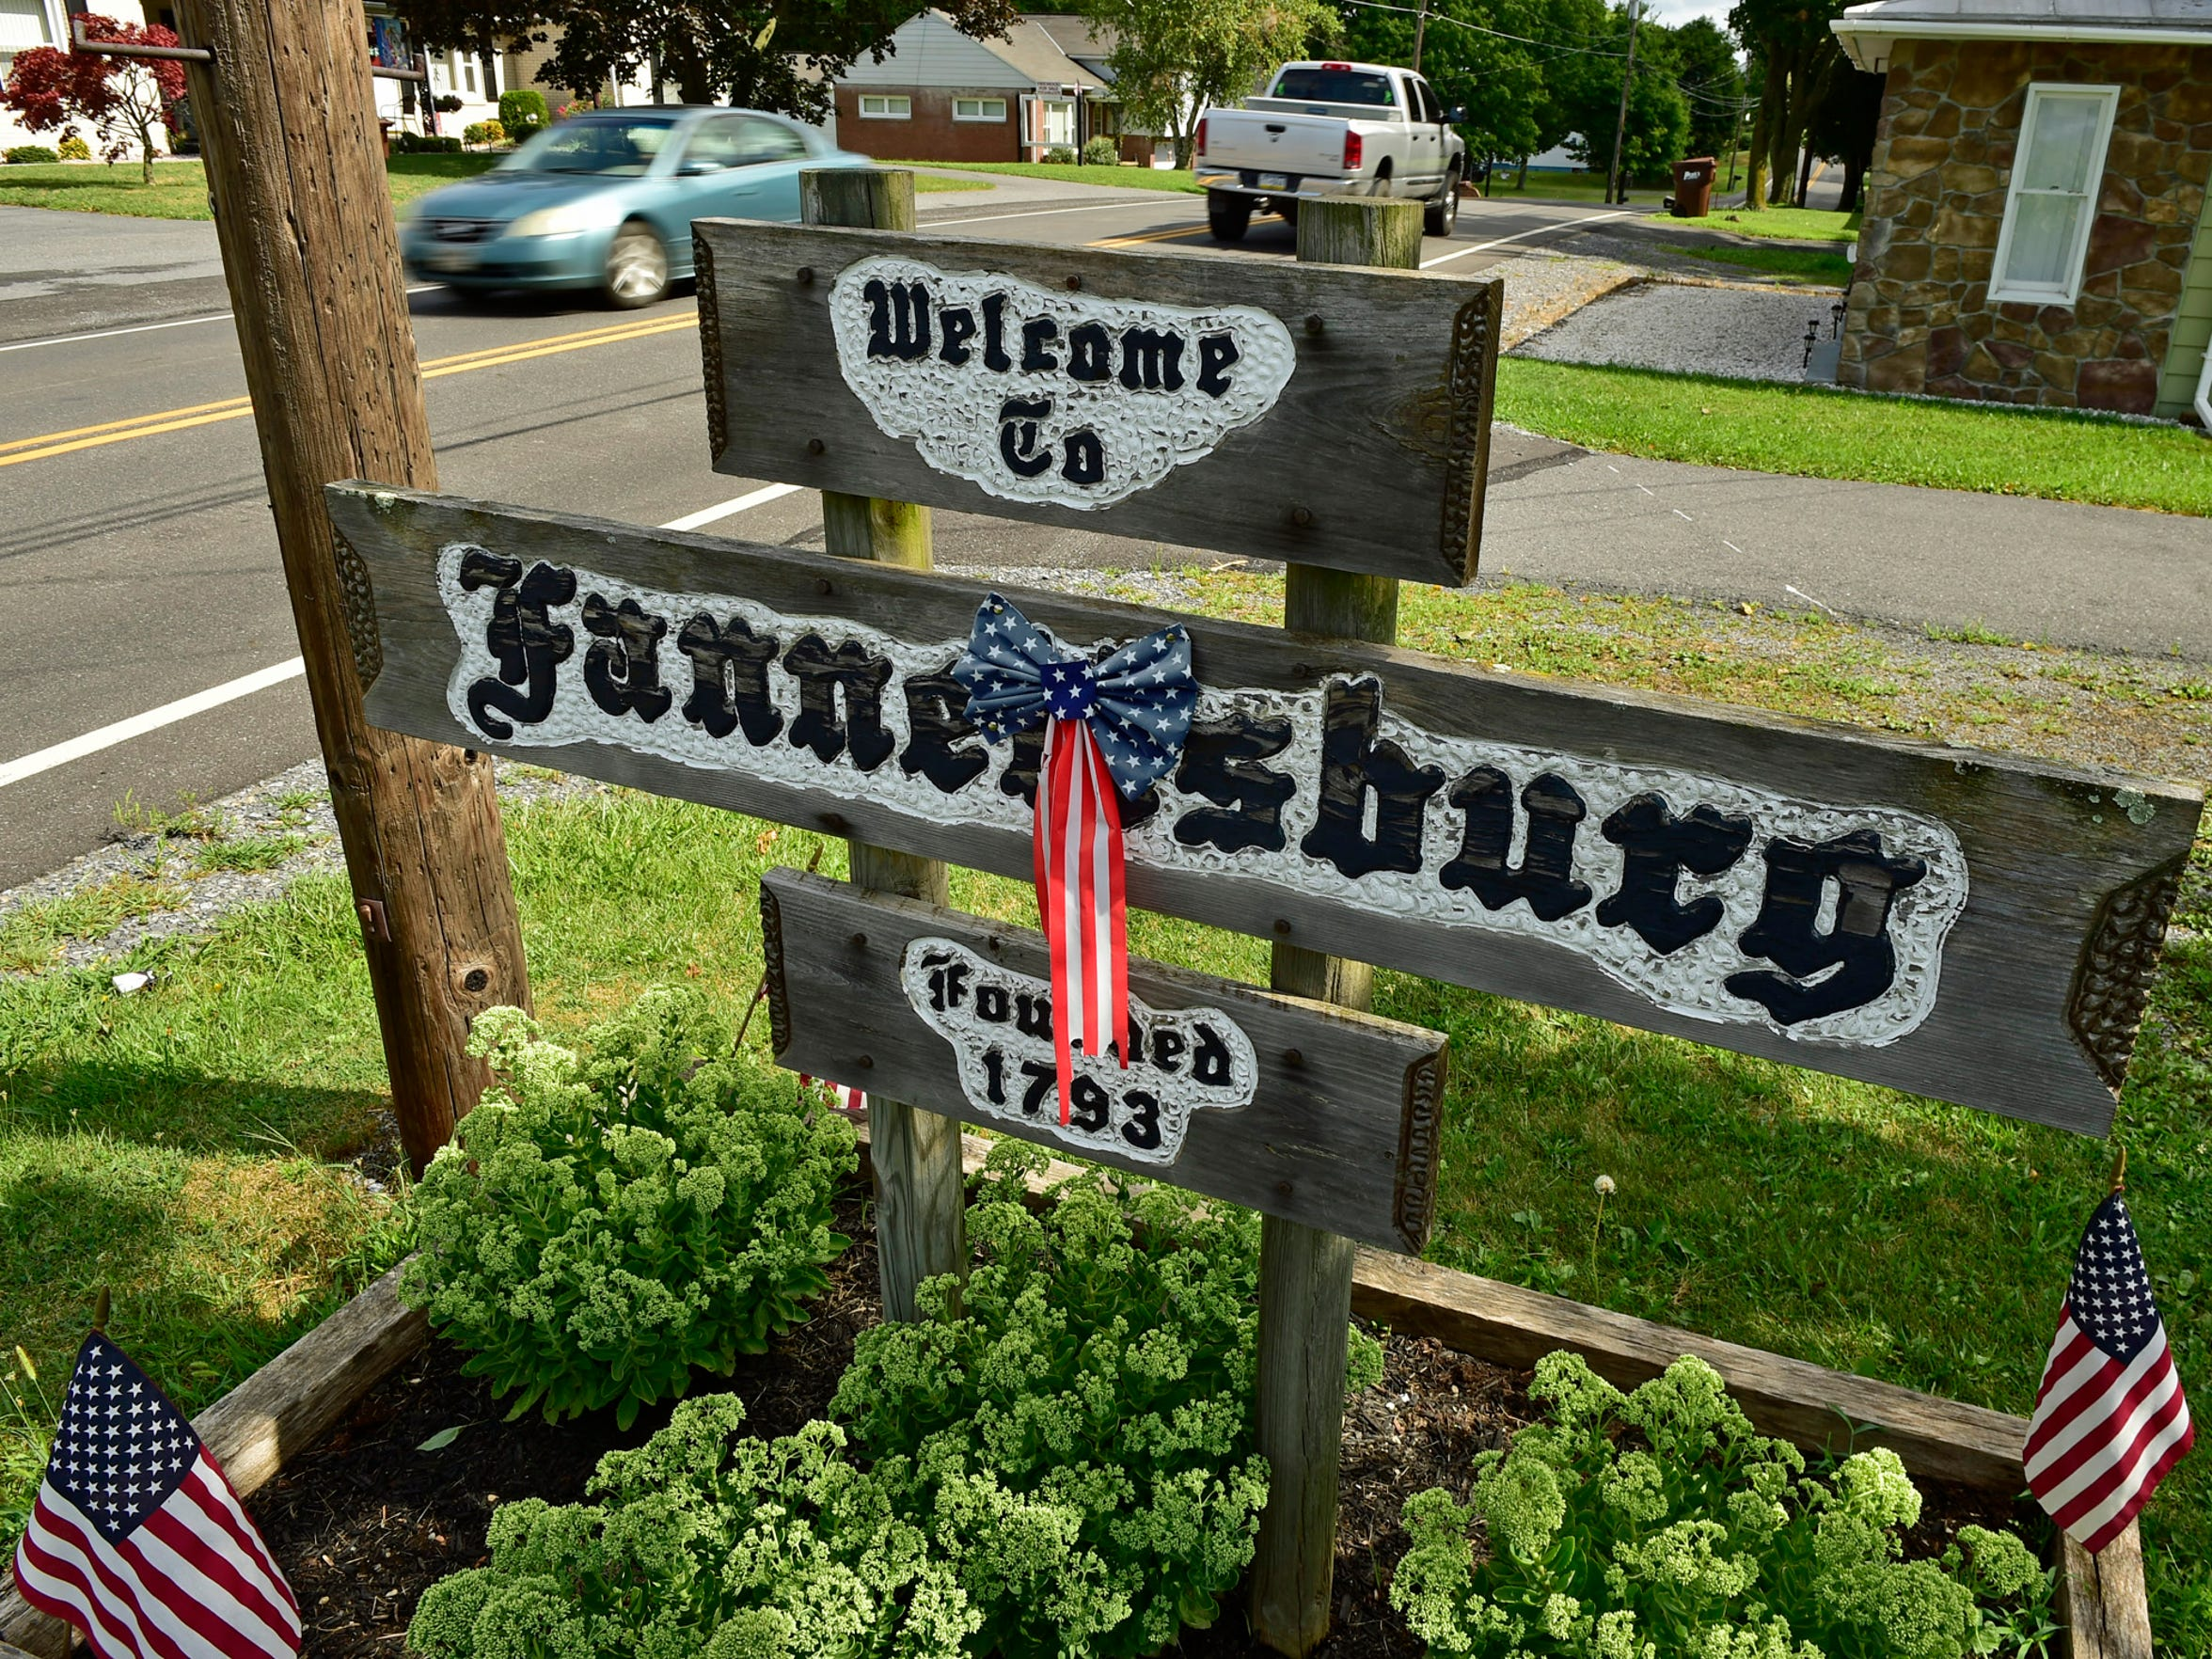 The tax bills for people living in the Fannett-Metal area are among the lowest in the county. The community of Fannettsburg, established in 1793, was photographed on Wednesday, August 17, 2016.